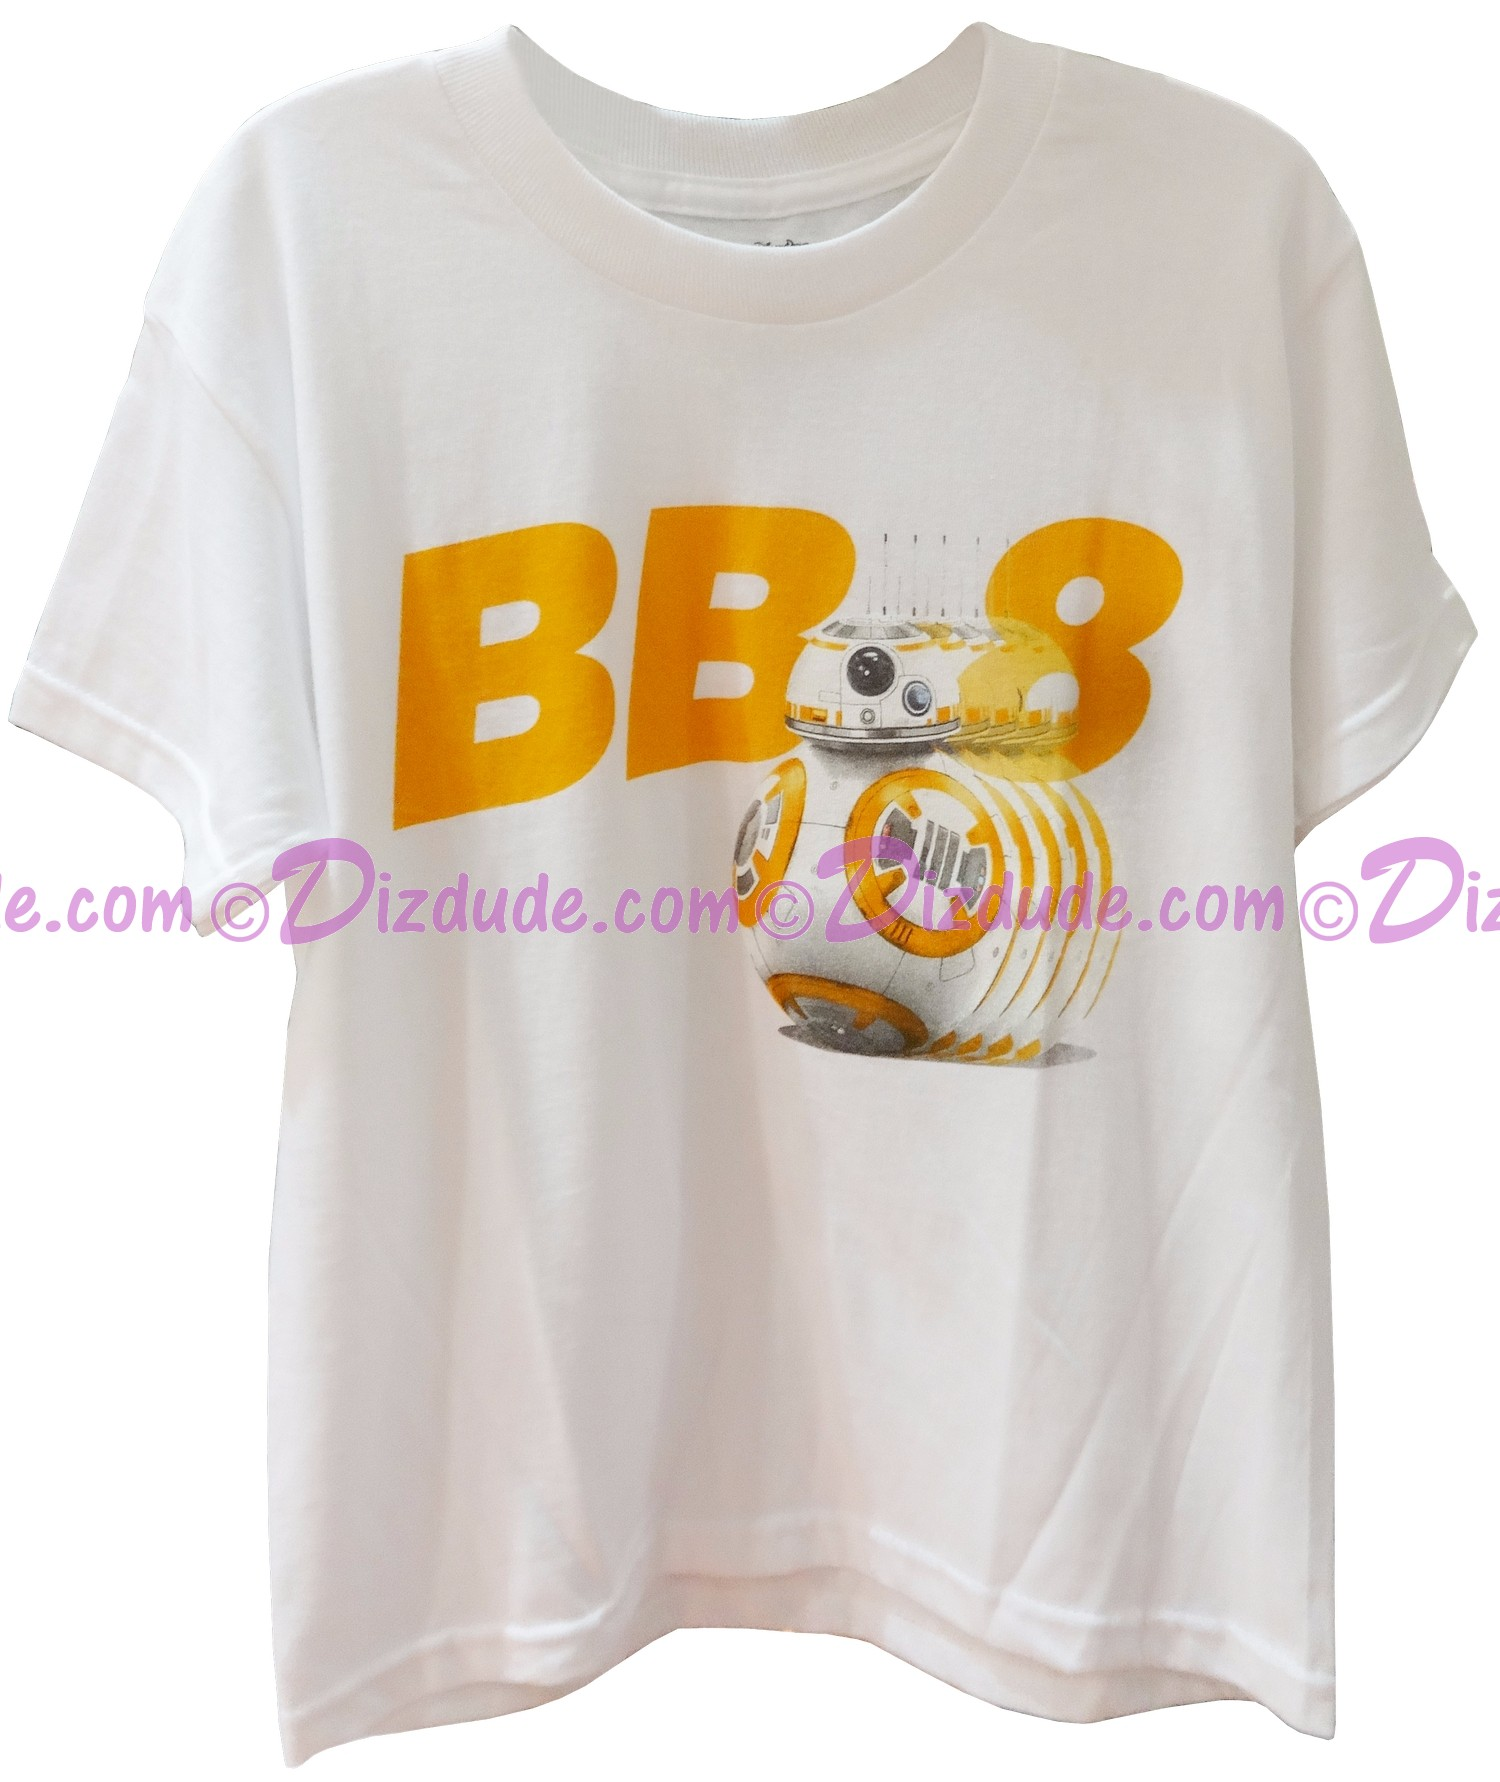 BB-8 Youth T-Shirt (Tshirt, T shirt or Tee) from Disney Star Wars: The Force Awakens © Dizdude.com